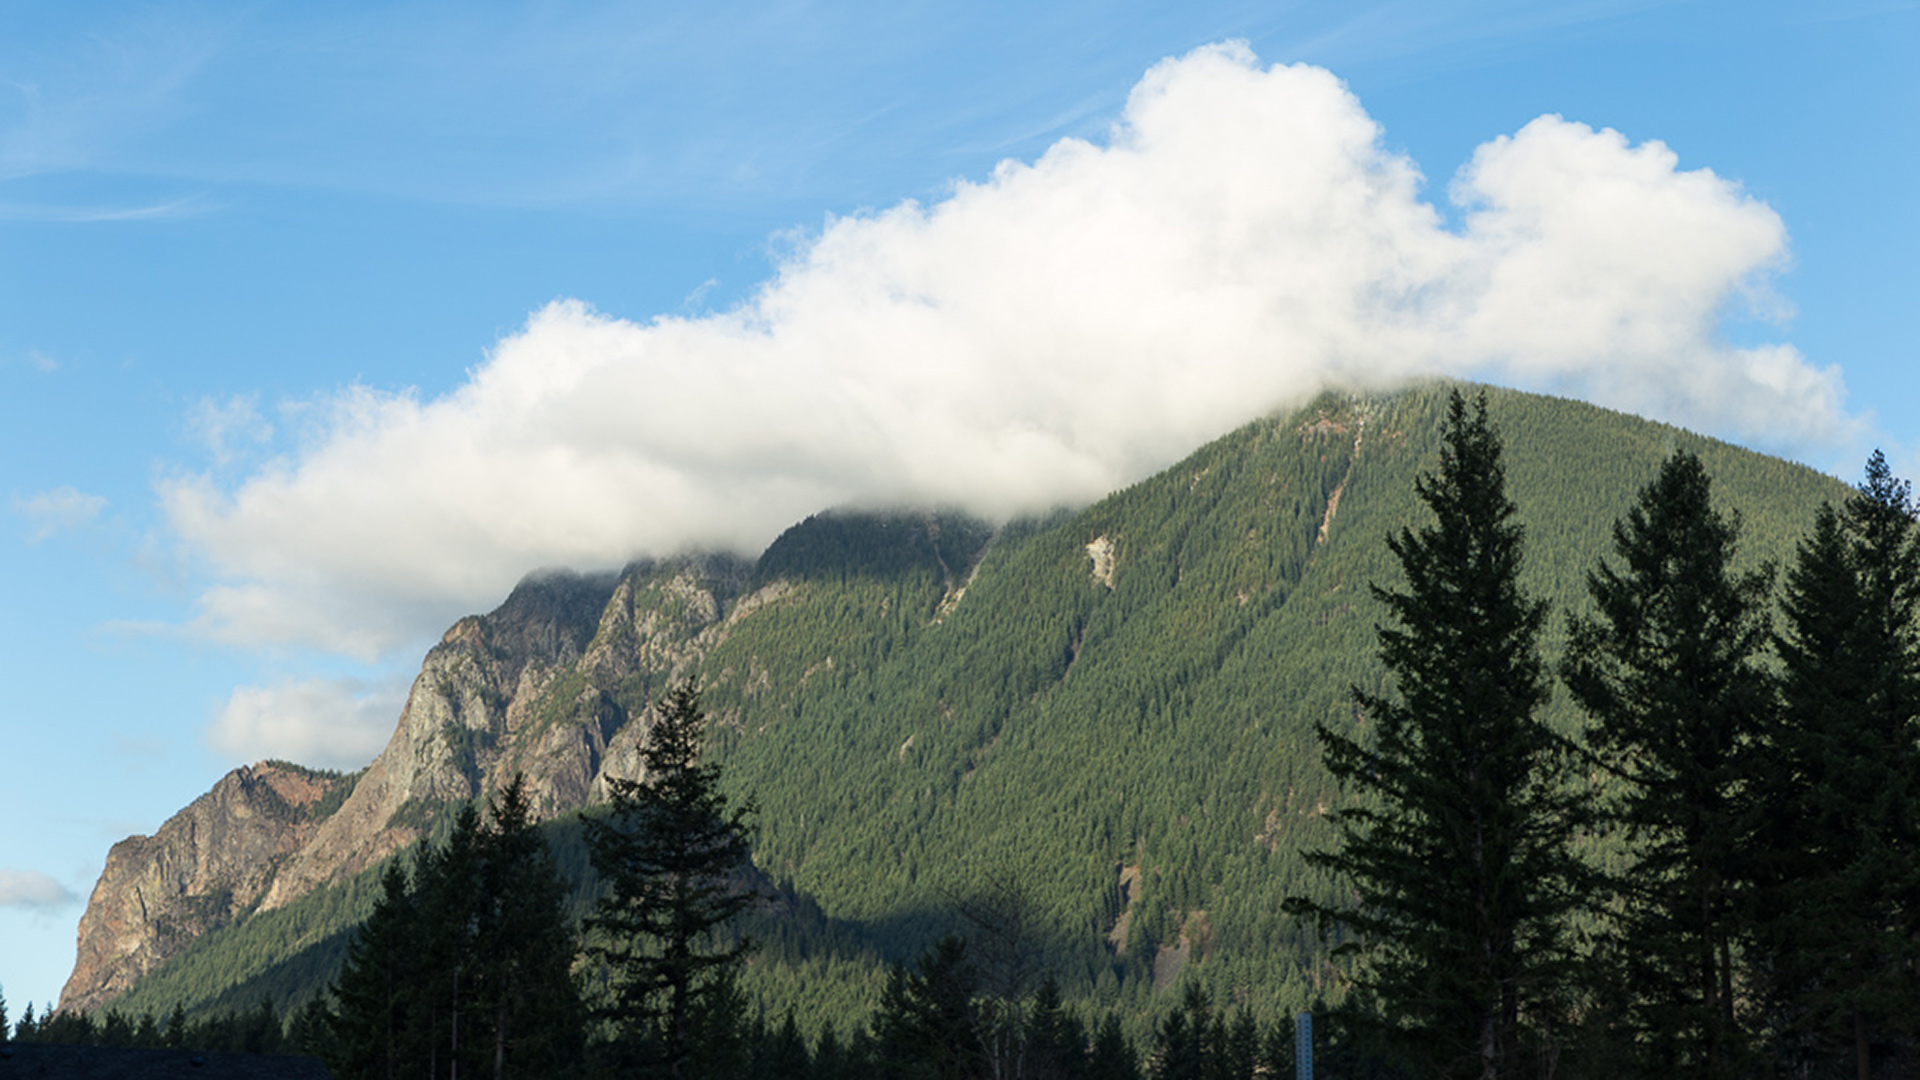 Make the awe-inspiring landscape of North Bend part of your daily routine